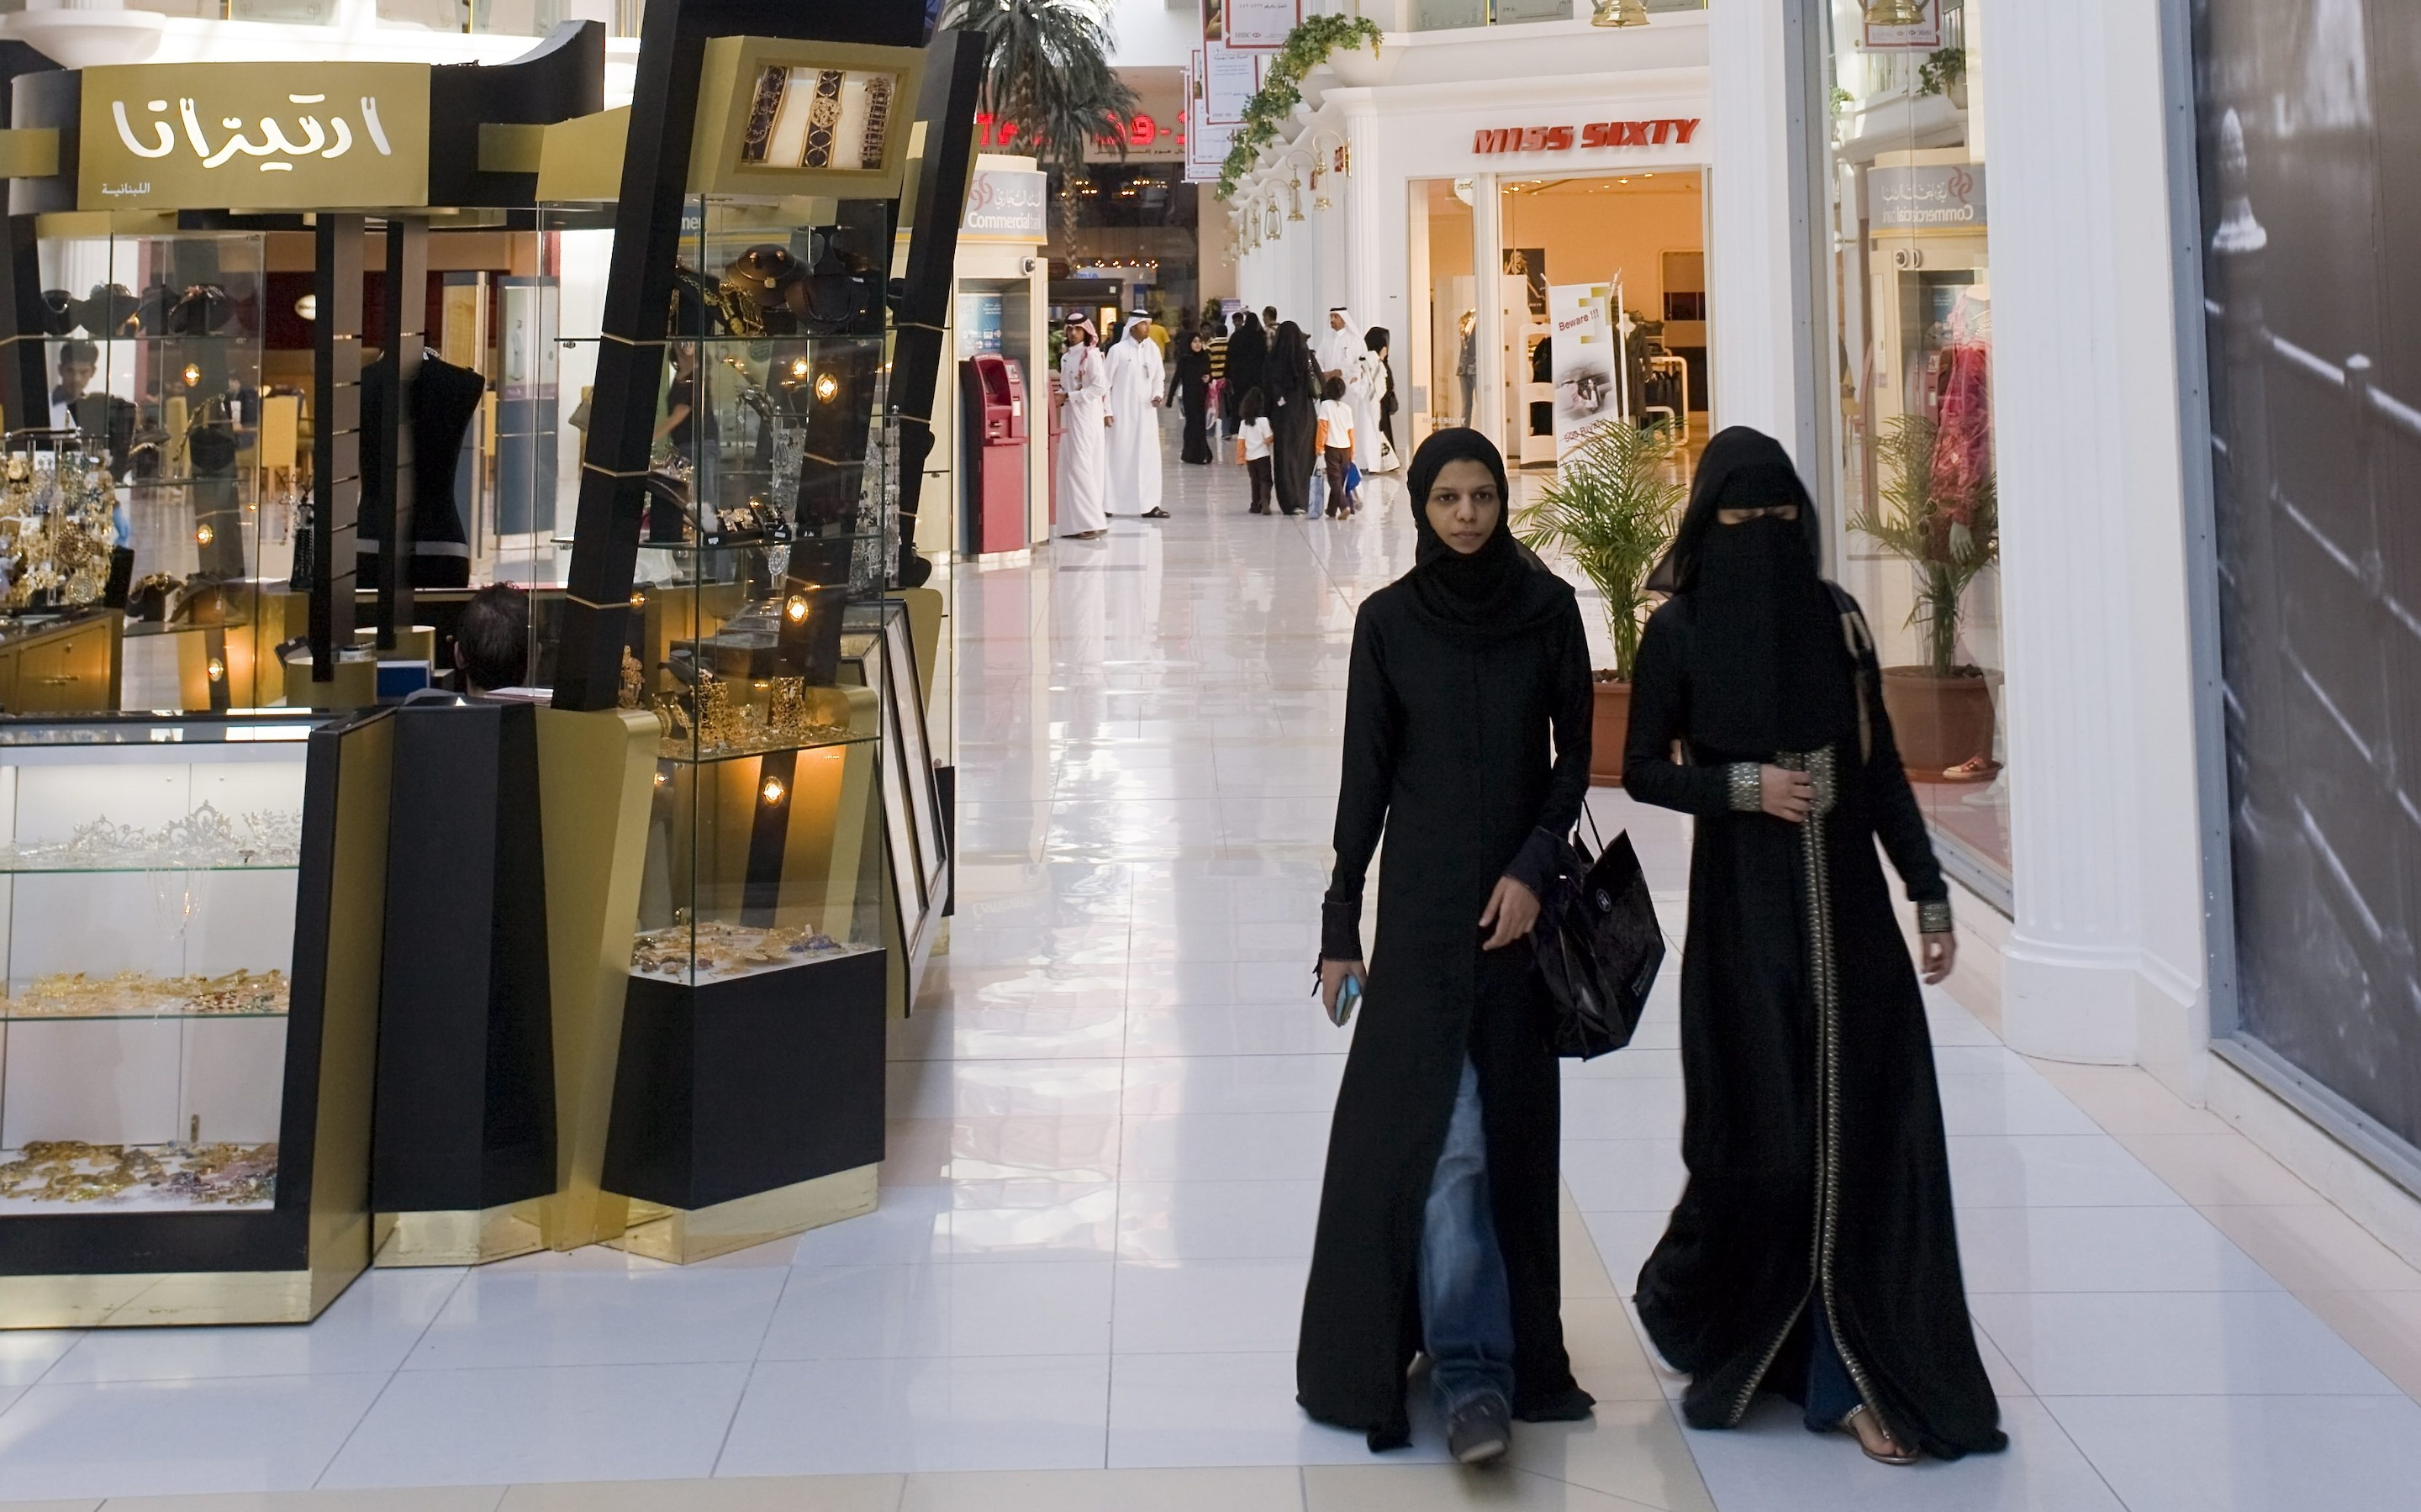 Moving guide 10 things to know before relocating to Qatar